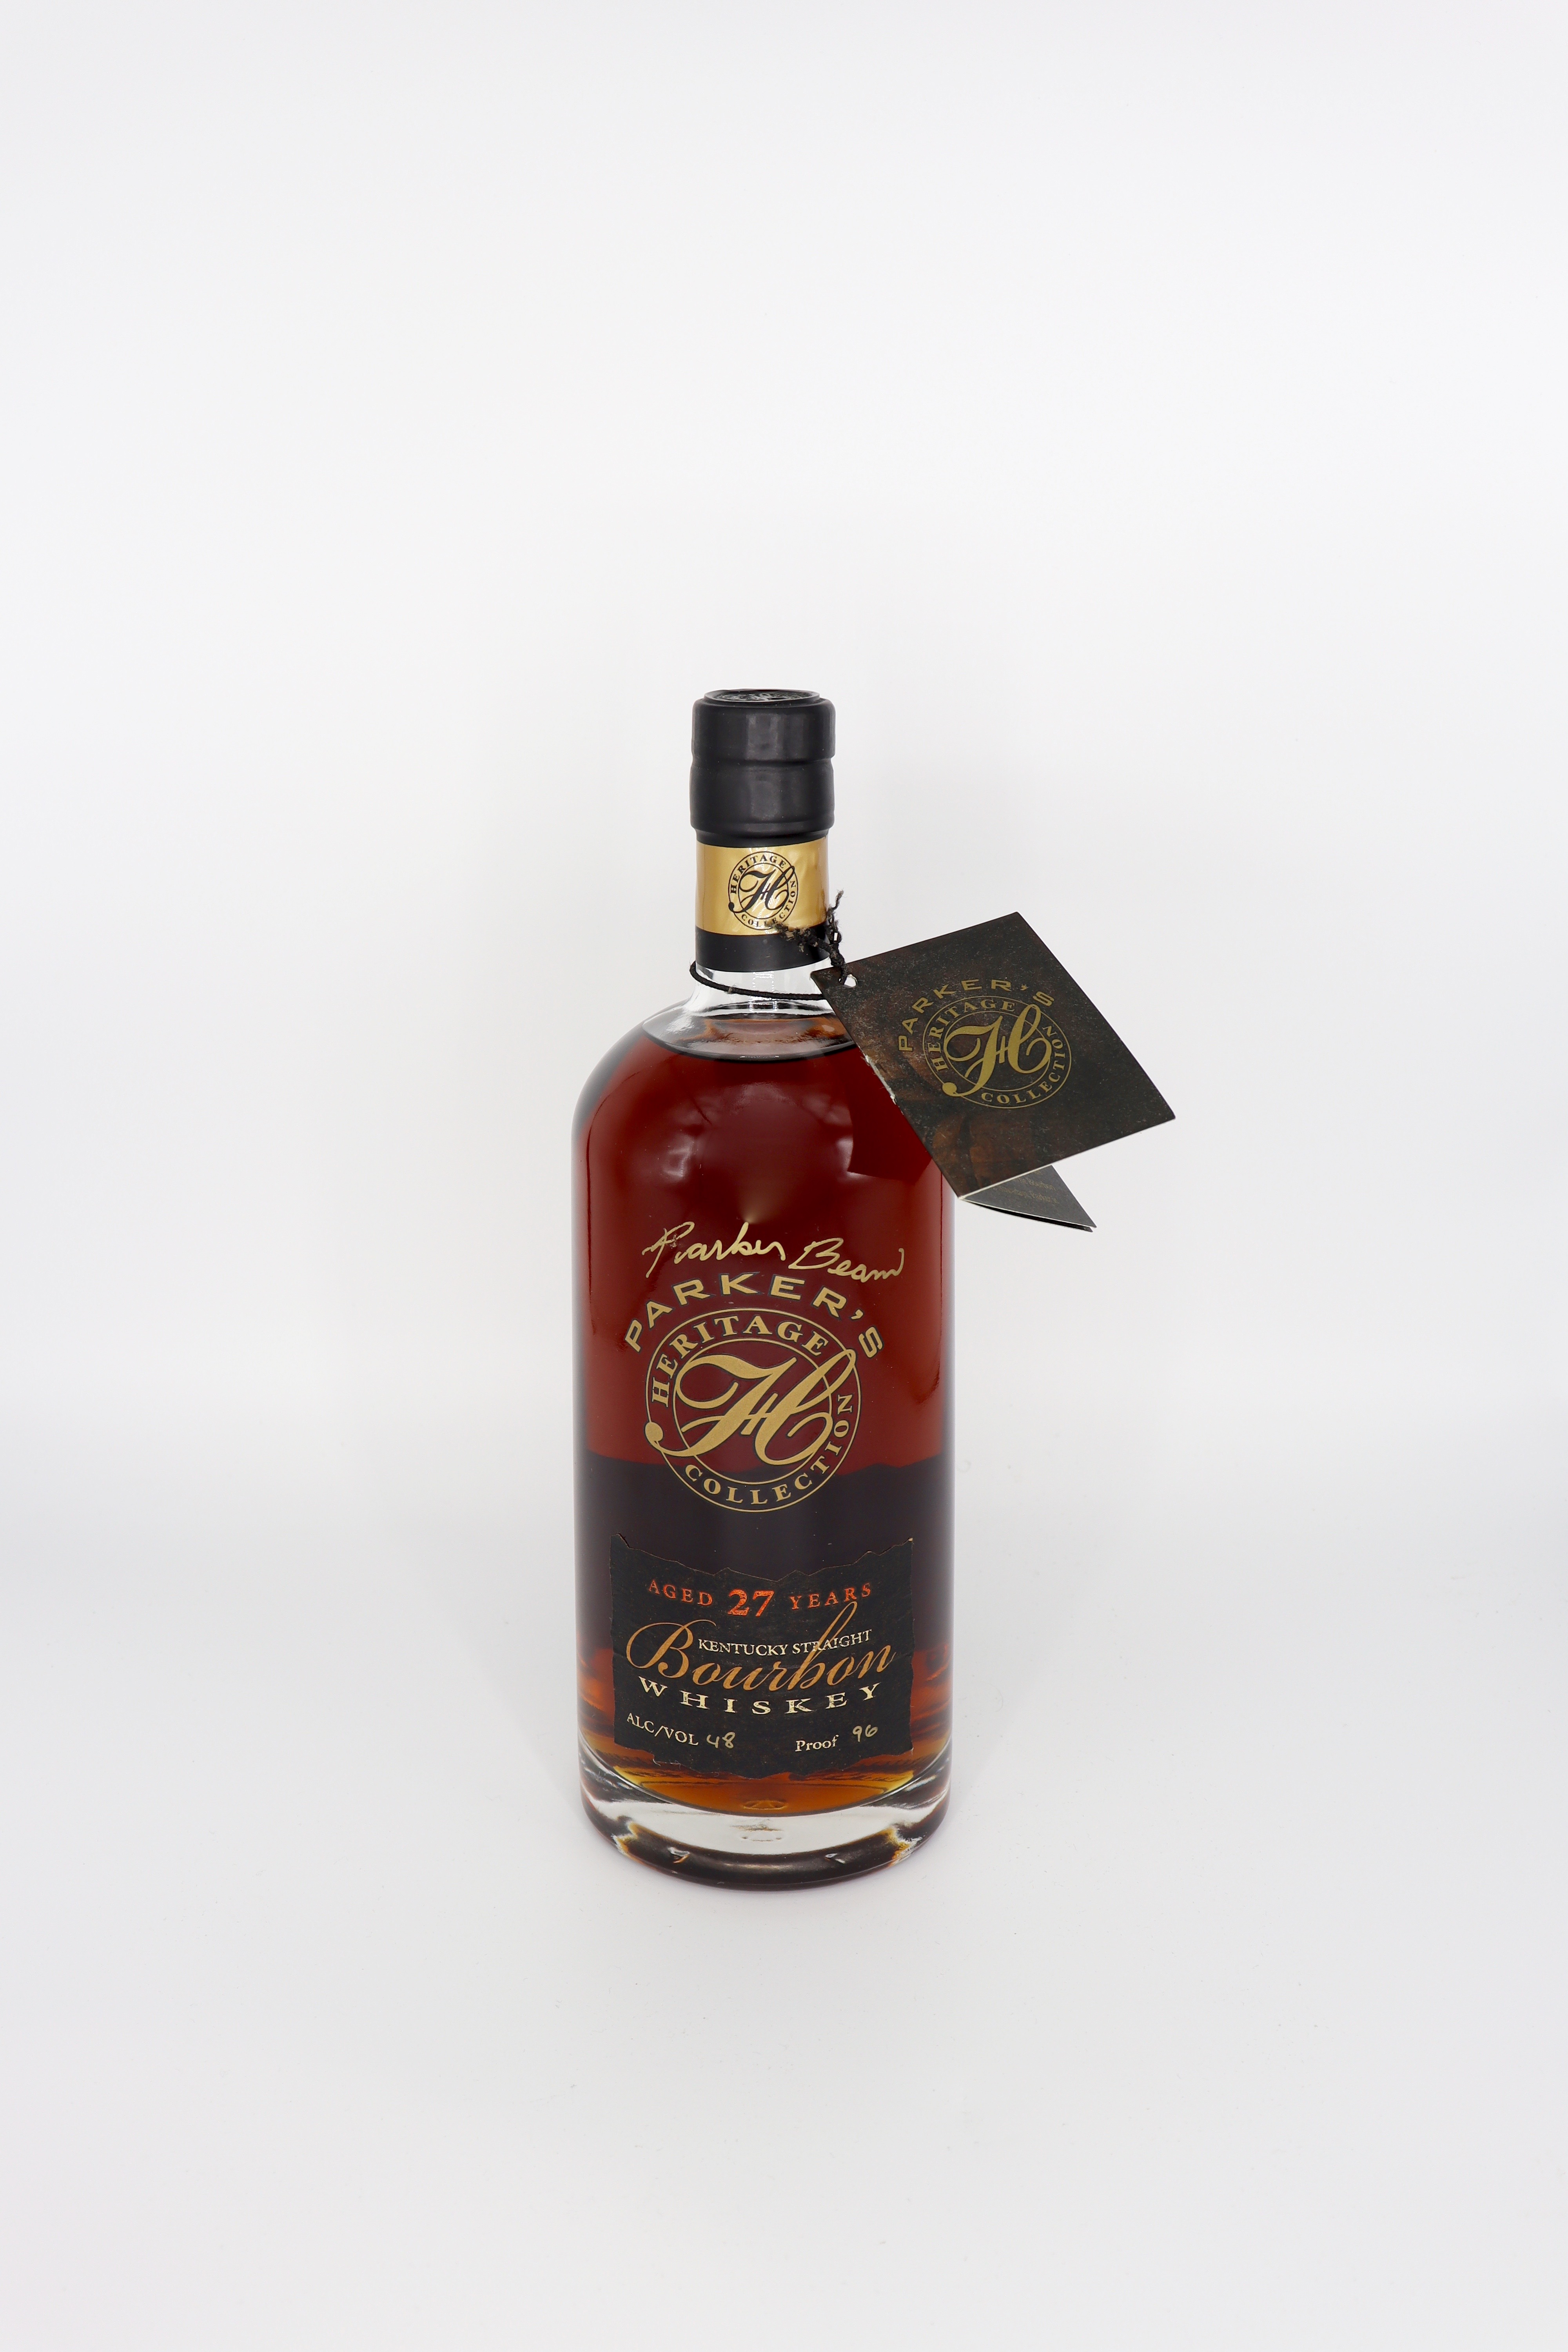 Parker's Heritage Collection Kentucky Straight Bourbon 2nd Edition 27 year old 96 proof Signed